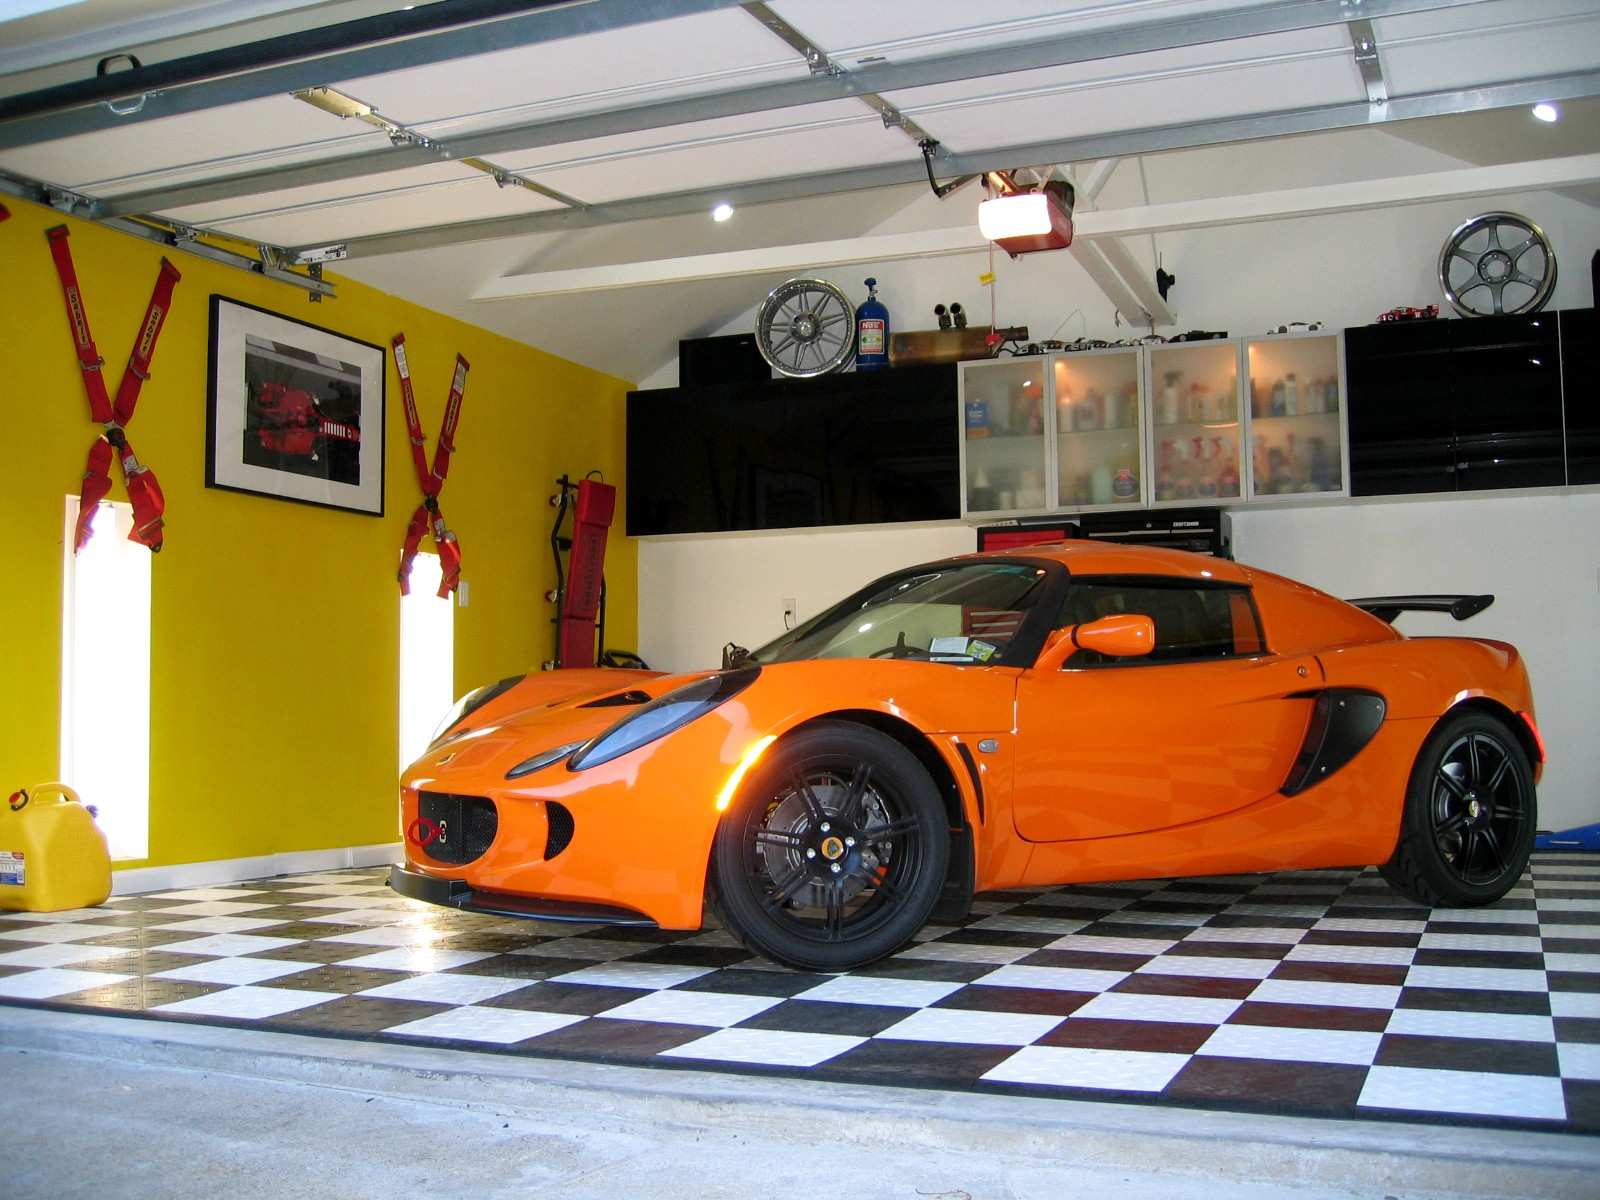 108283d1231970177-garage-pics-co-exige-g